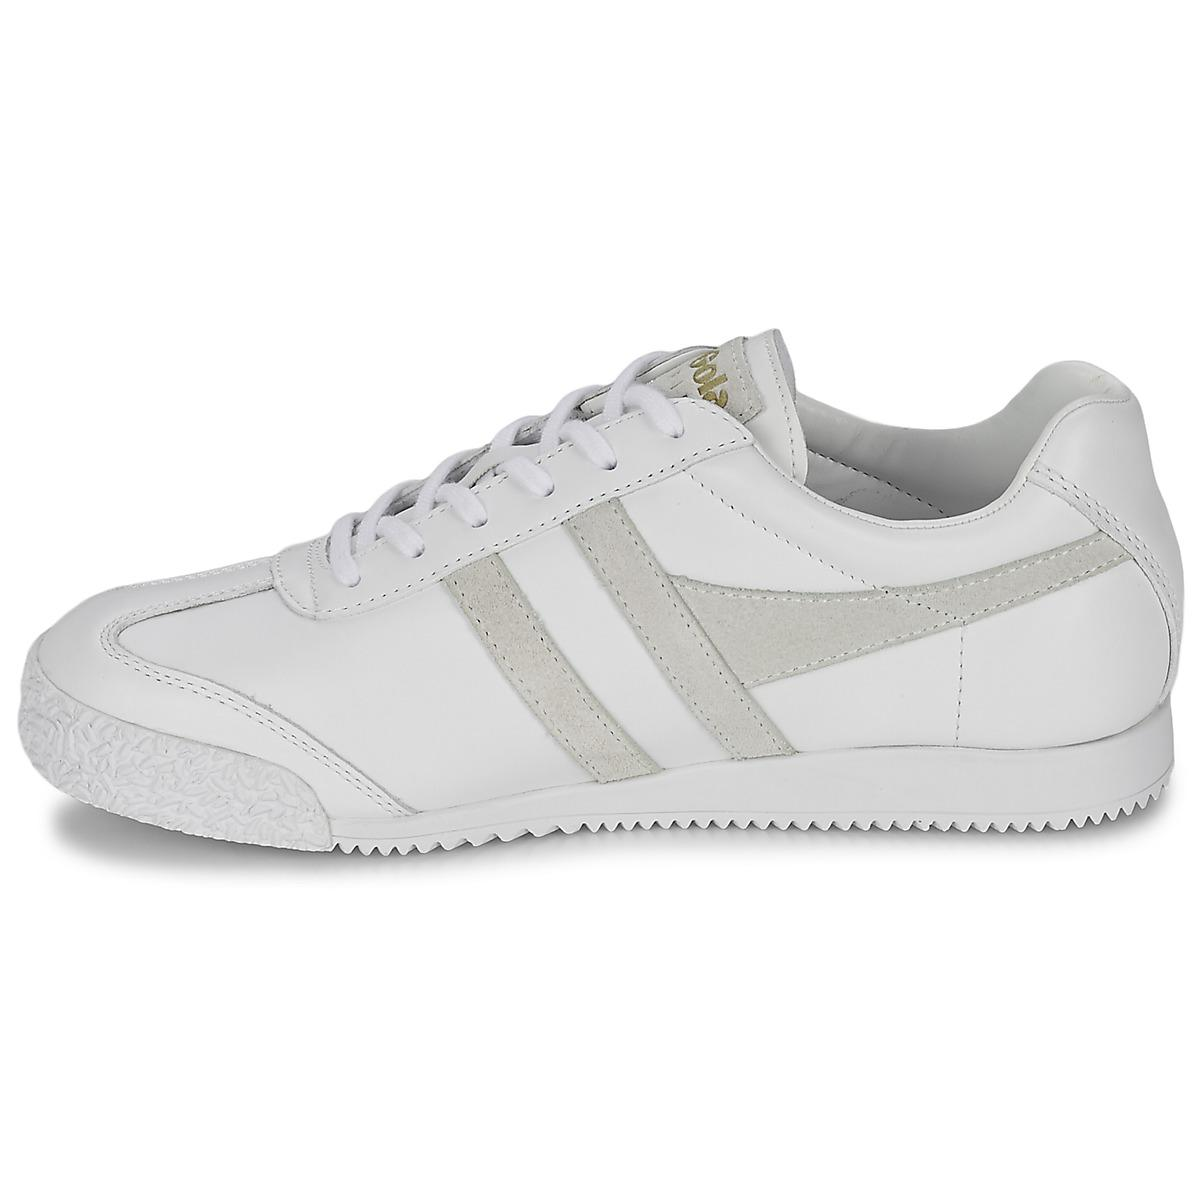 Gola Leather Harrier Mono Shoes (trainers) in White